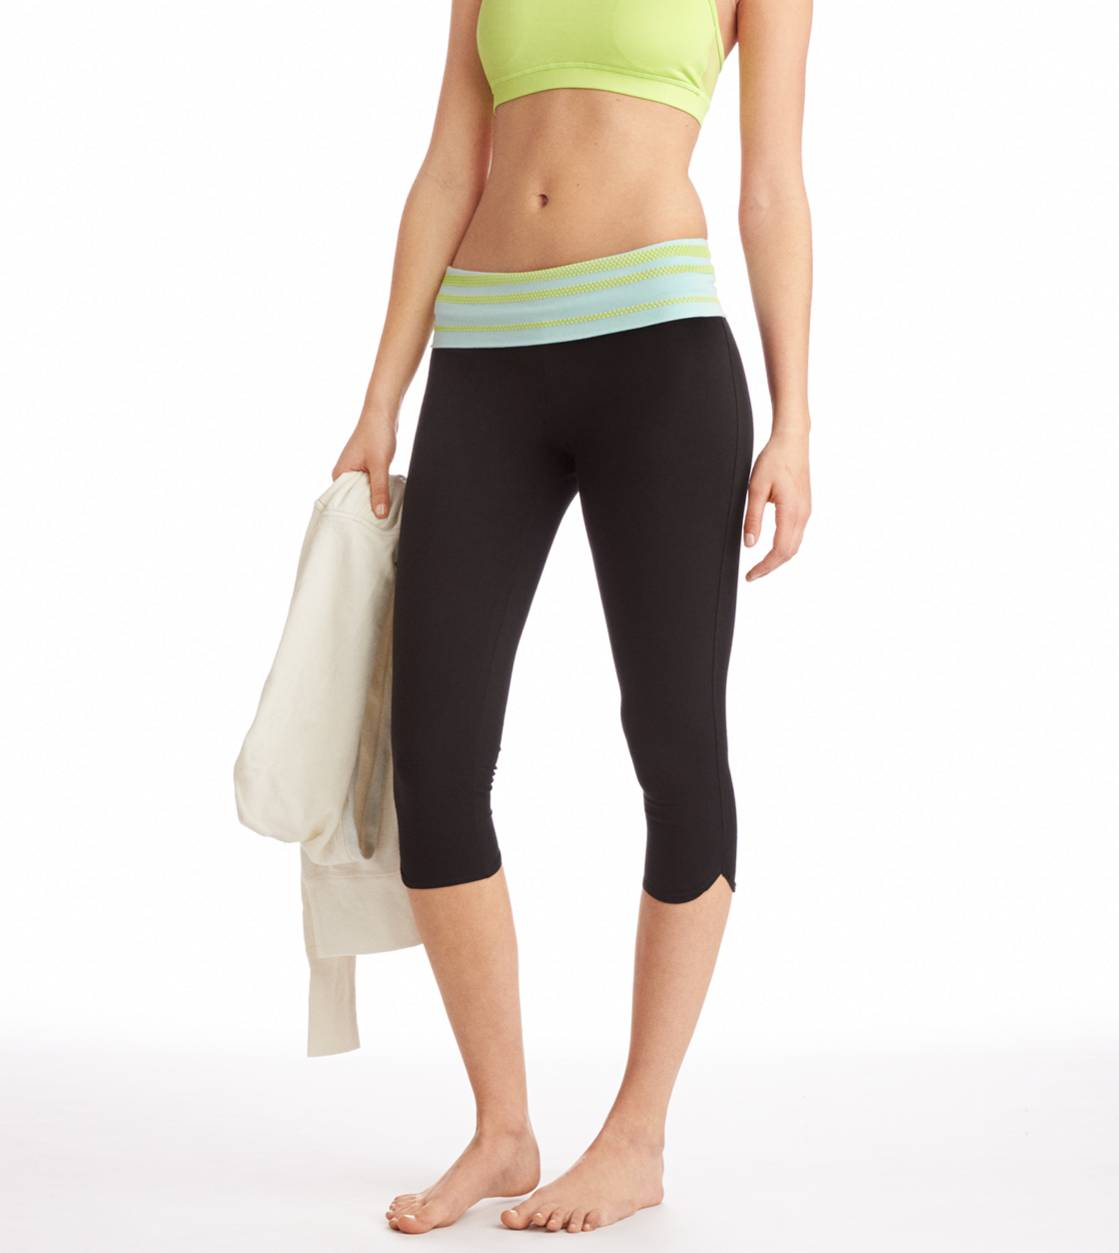 Spring Break Aerie Neon Stud Crop Yoga Pant